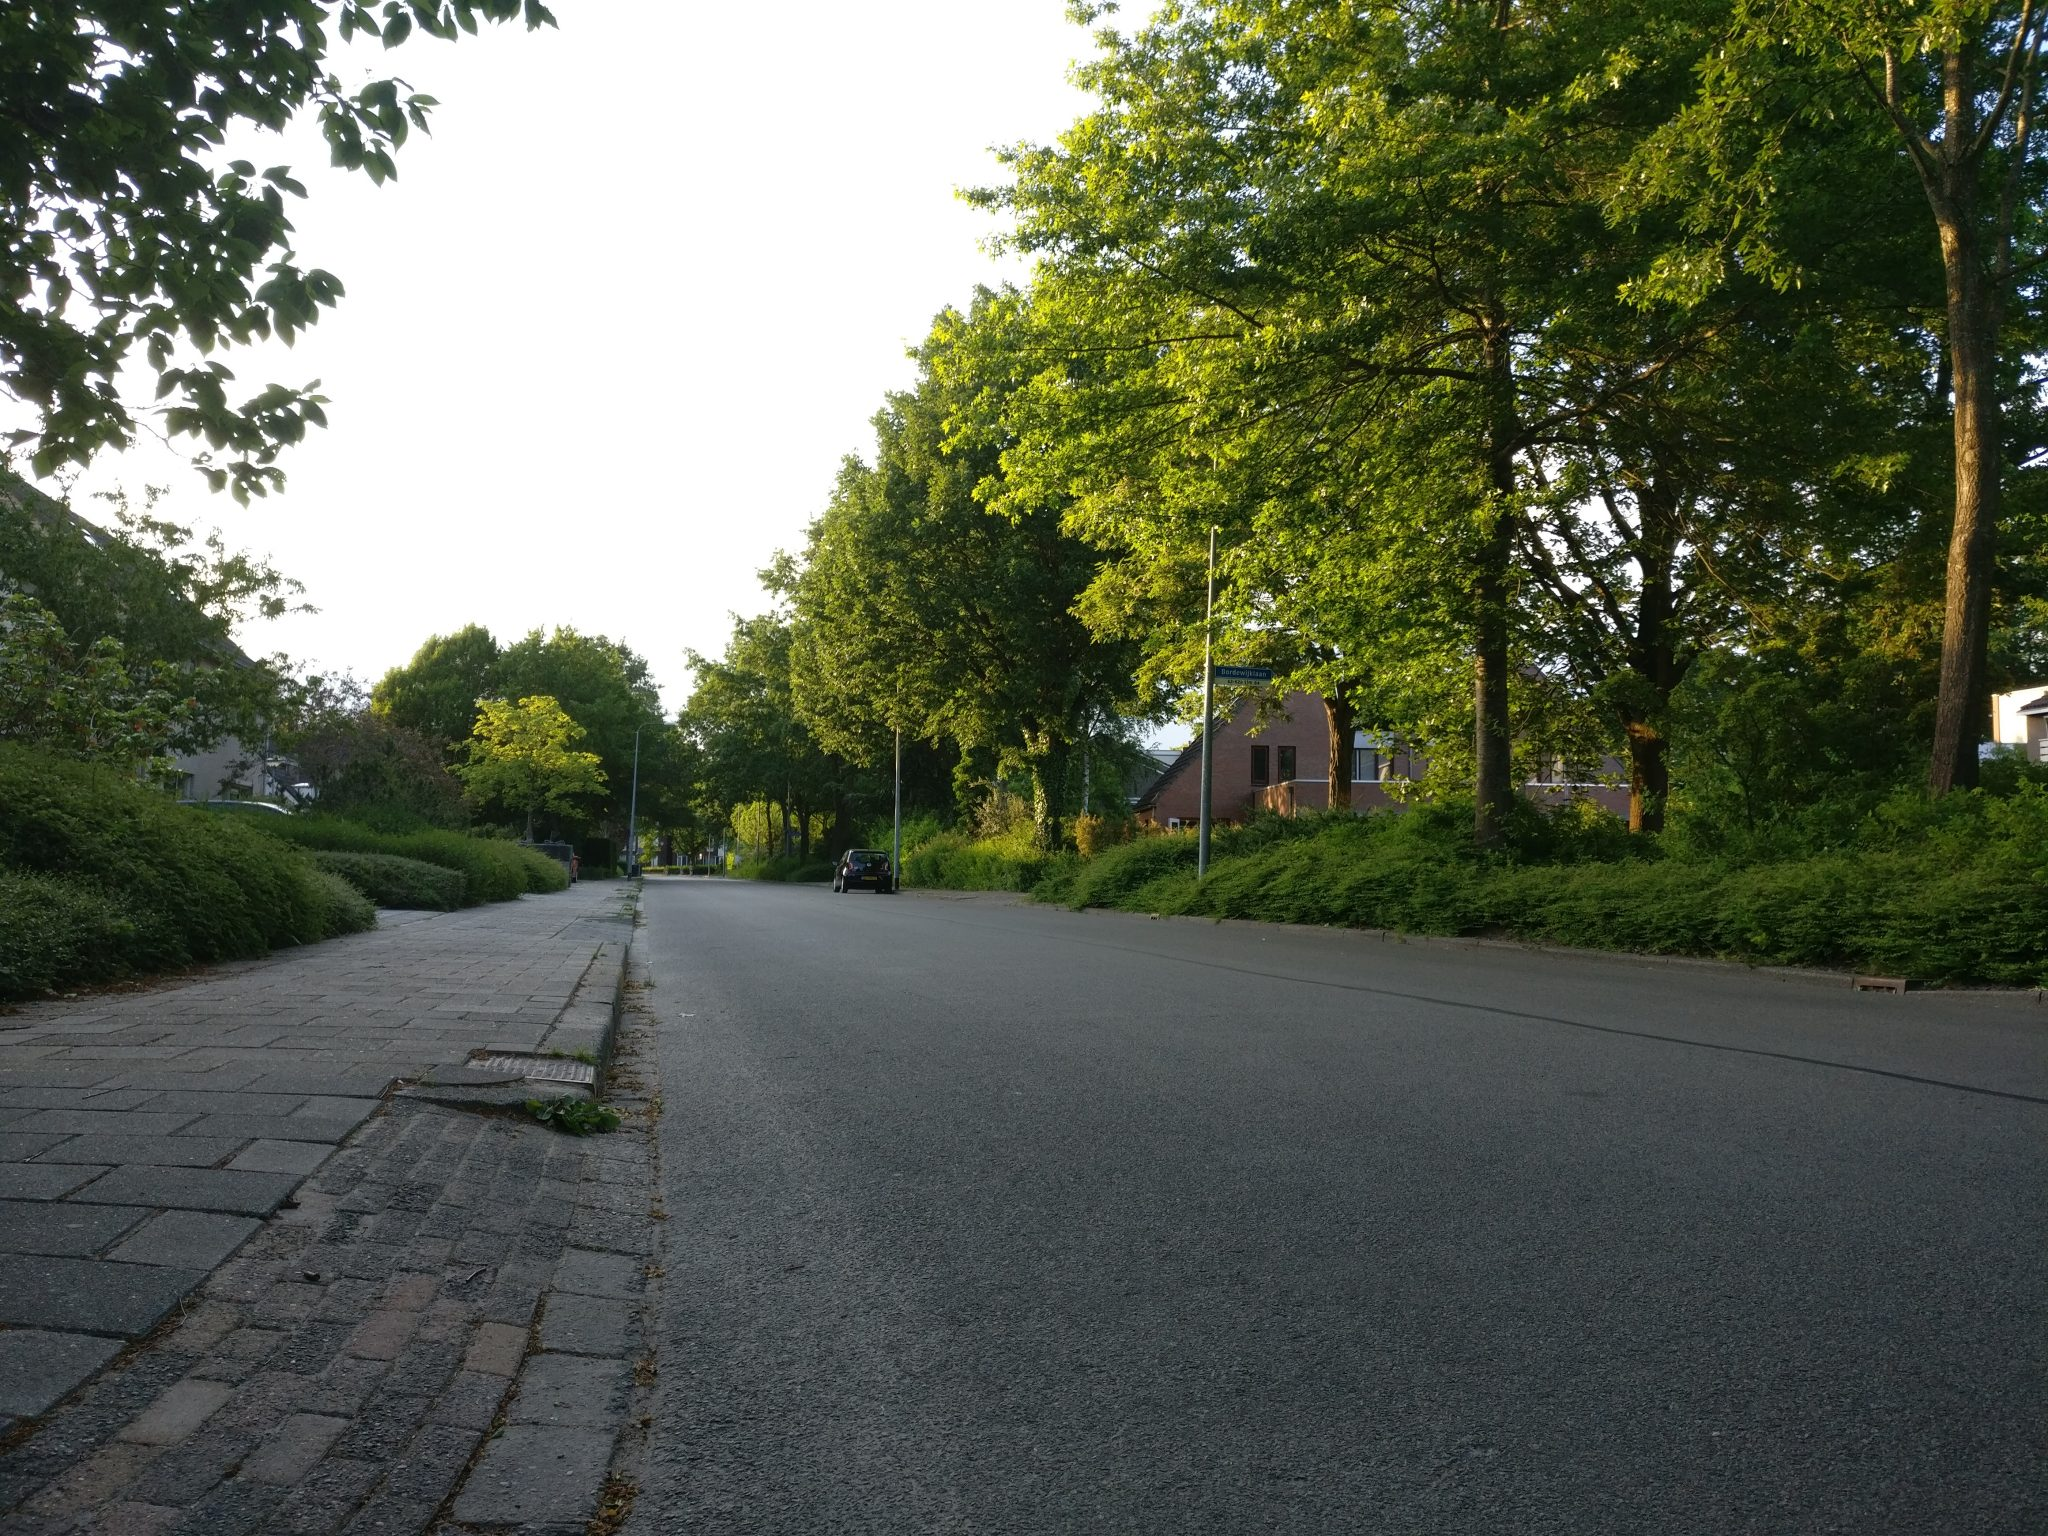 Our well-paved, quiet street